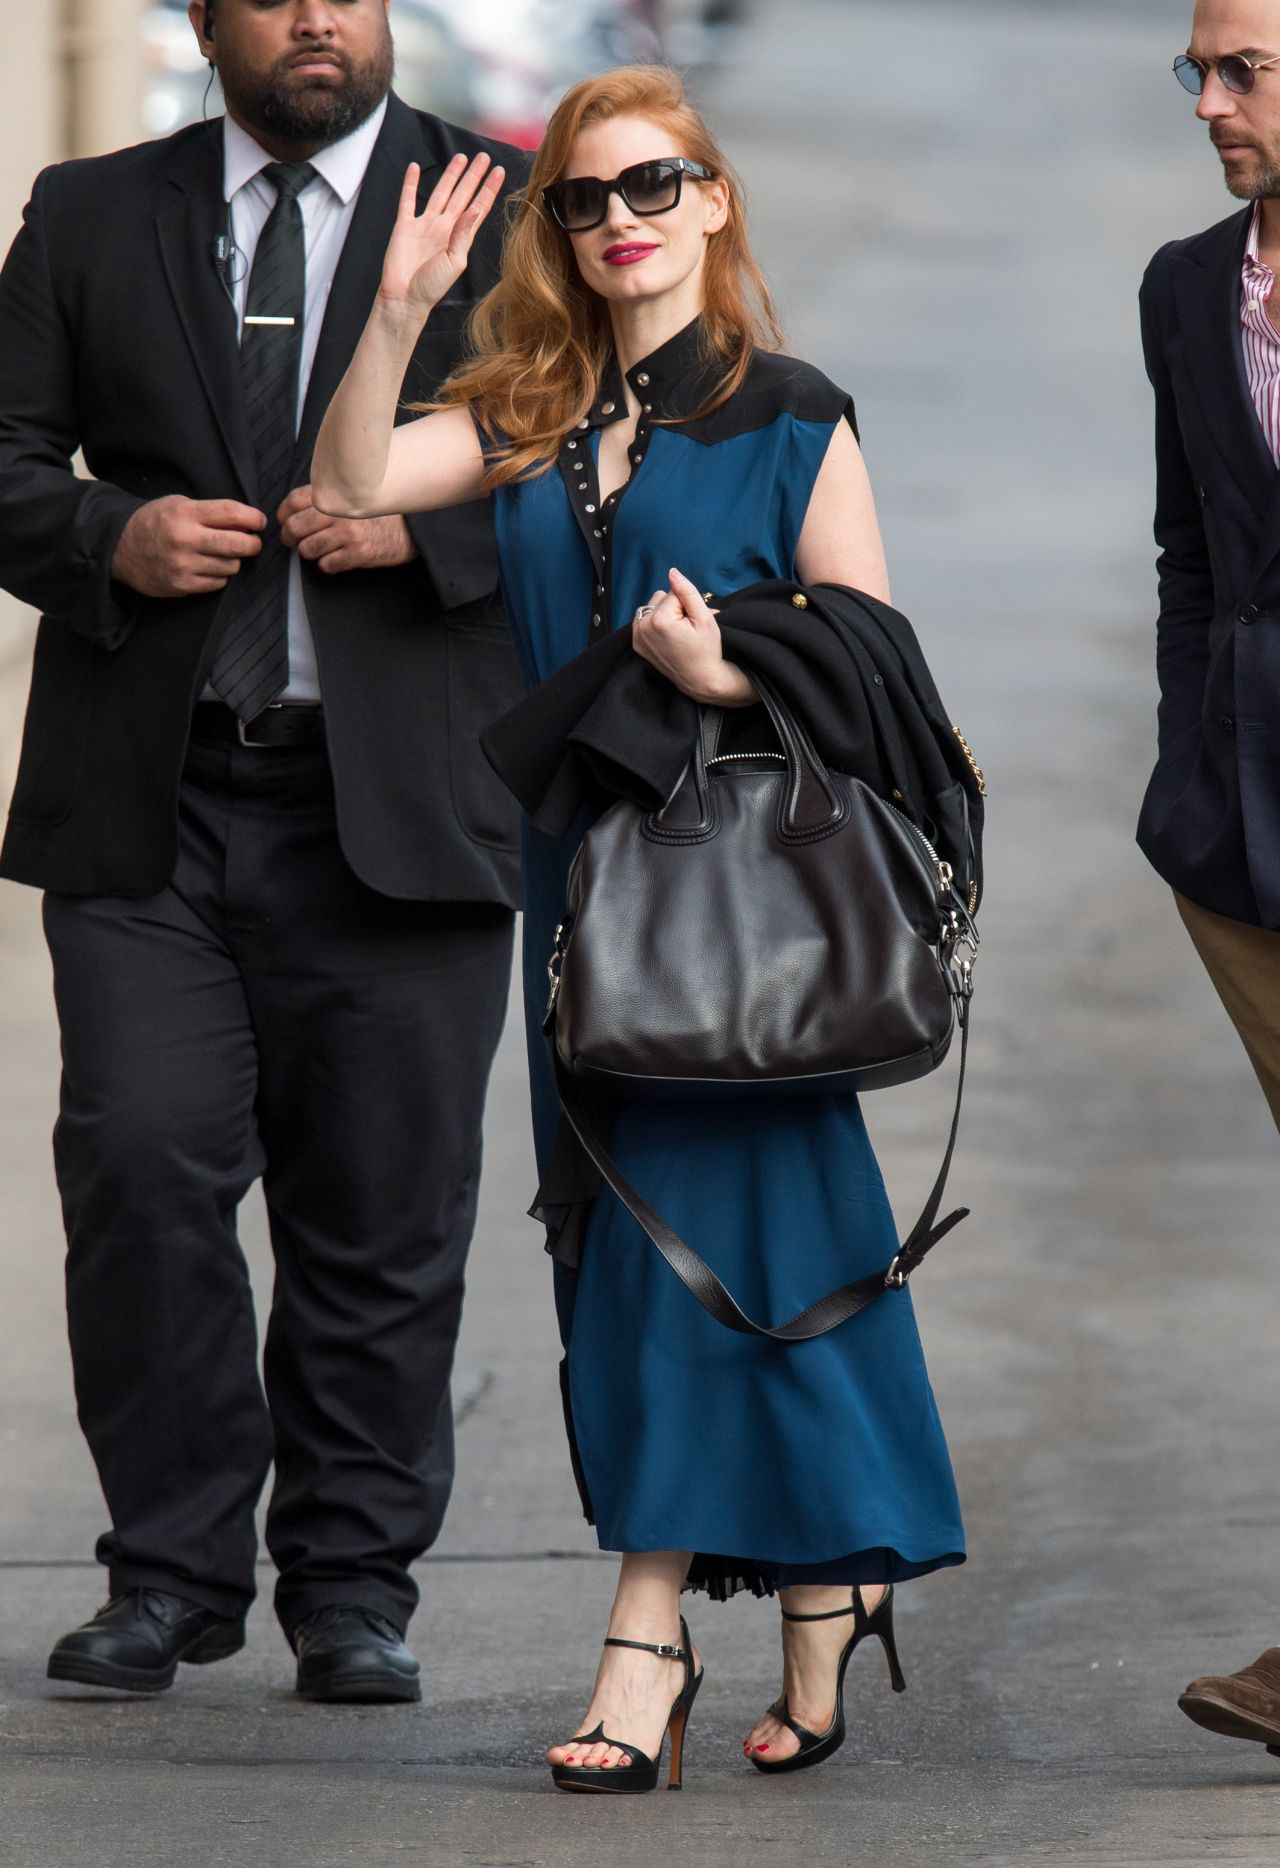 http://celebmafia.com/wp-content/uploads/2018/01/jessica-chastain-arrives-for-appearance-on-jimmy-kimmel-live-in-la-2.jpg